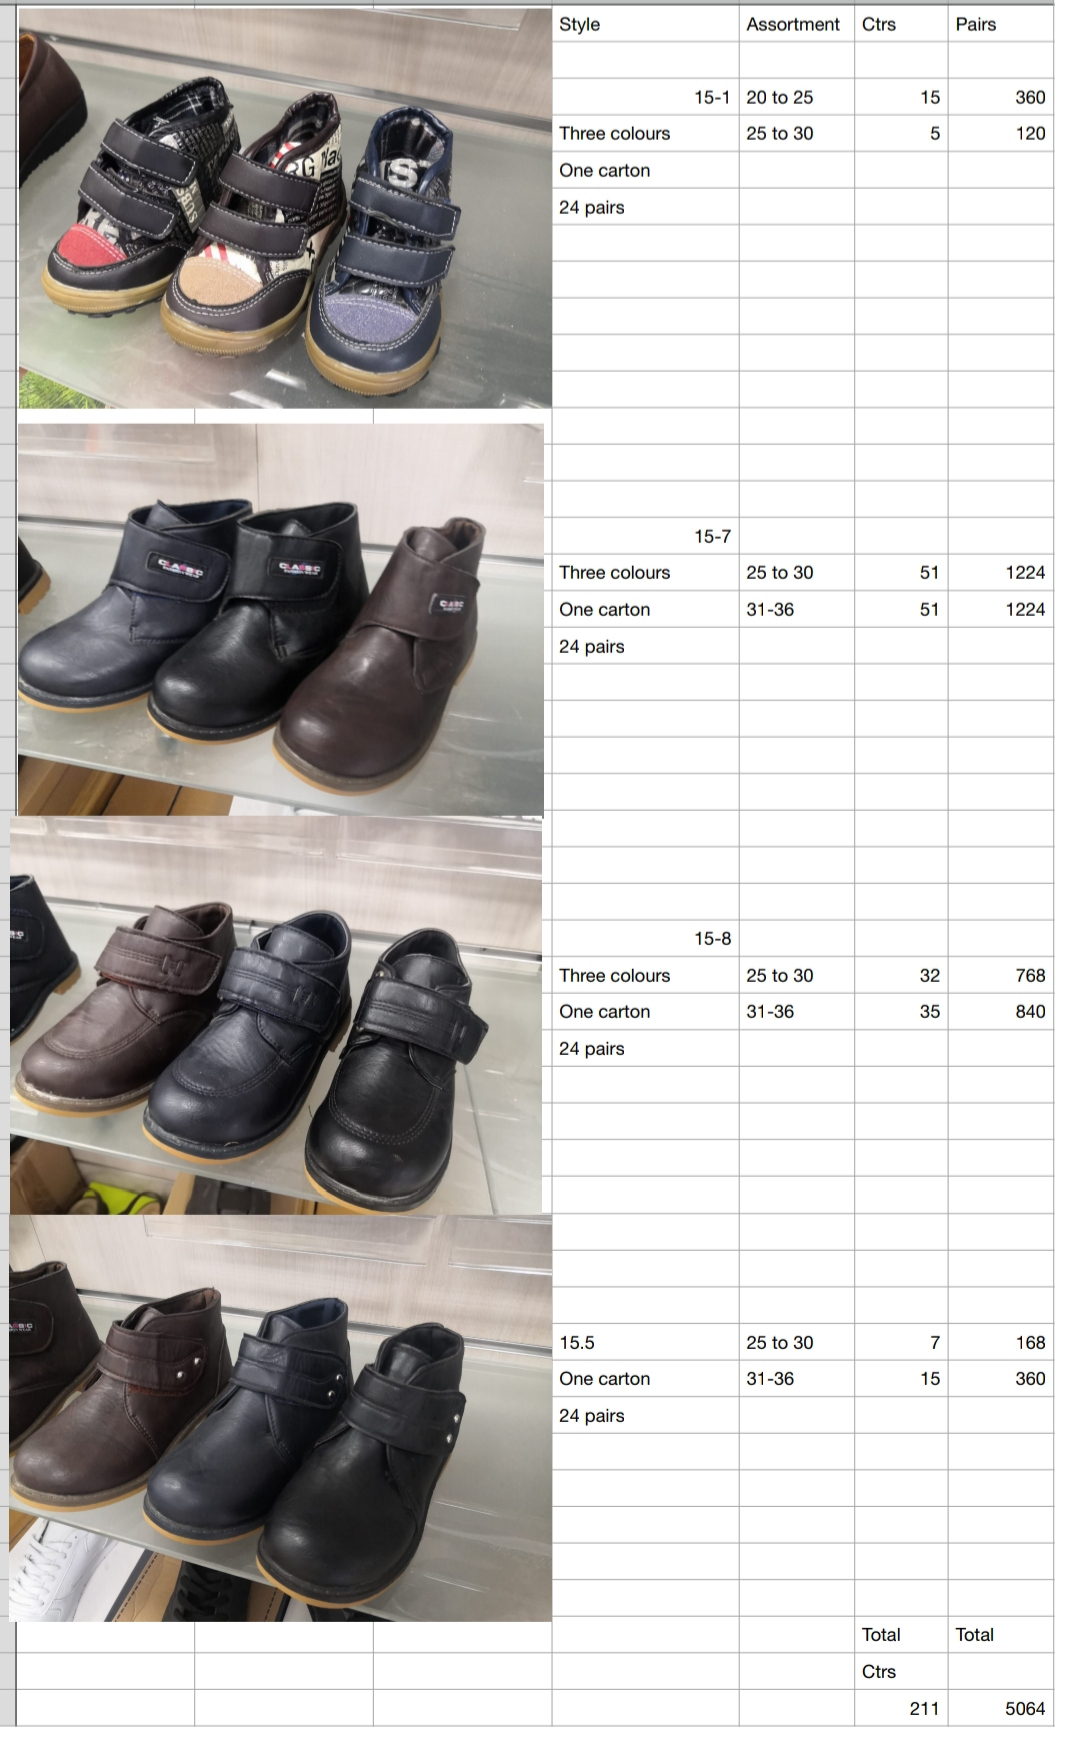 5.064 PARES DE CALZADO DE NIÑO - 5.064 PAIRS OF CHILDRENS FOOTWEAR.